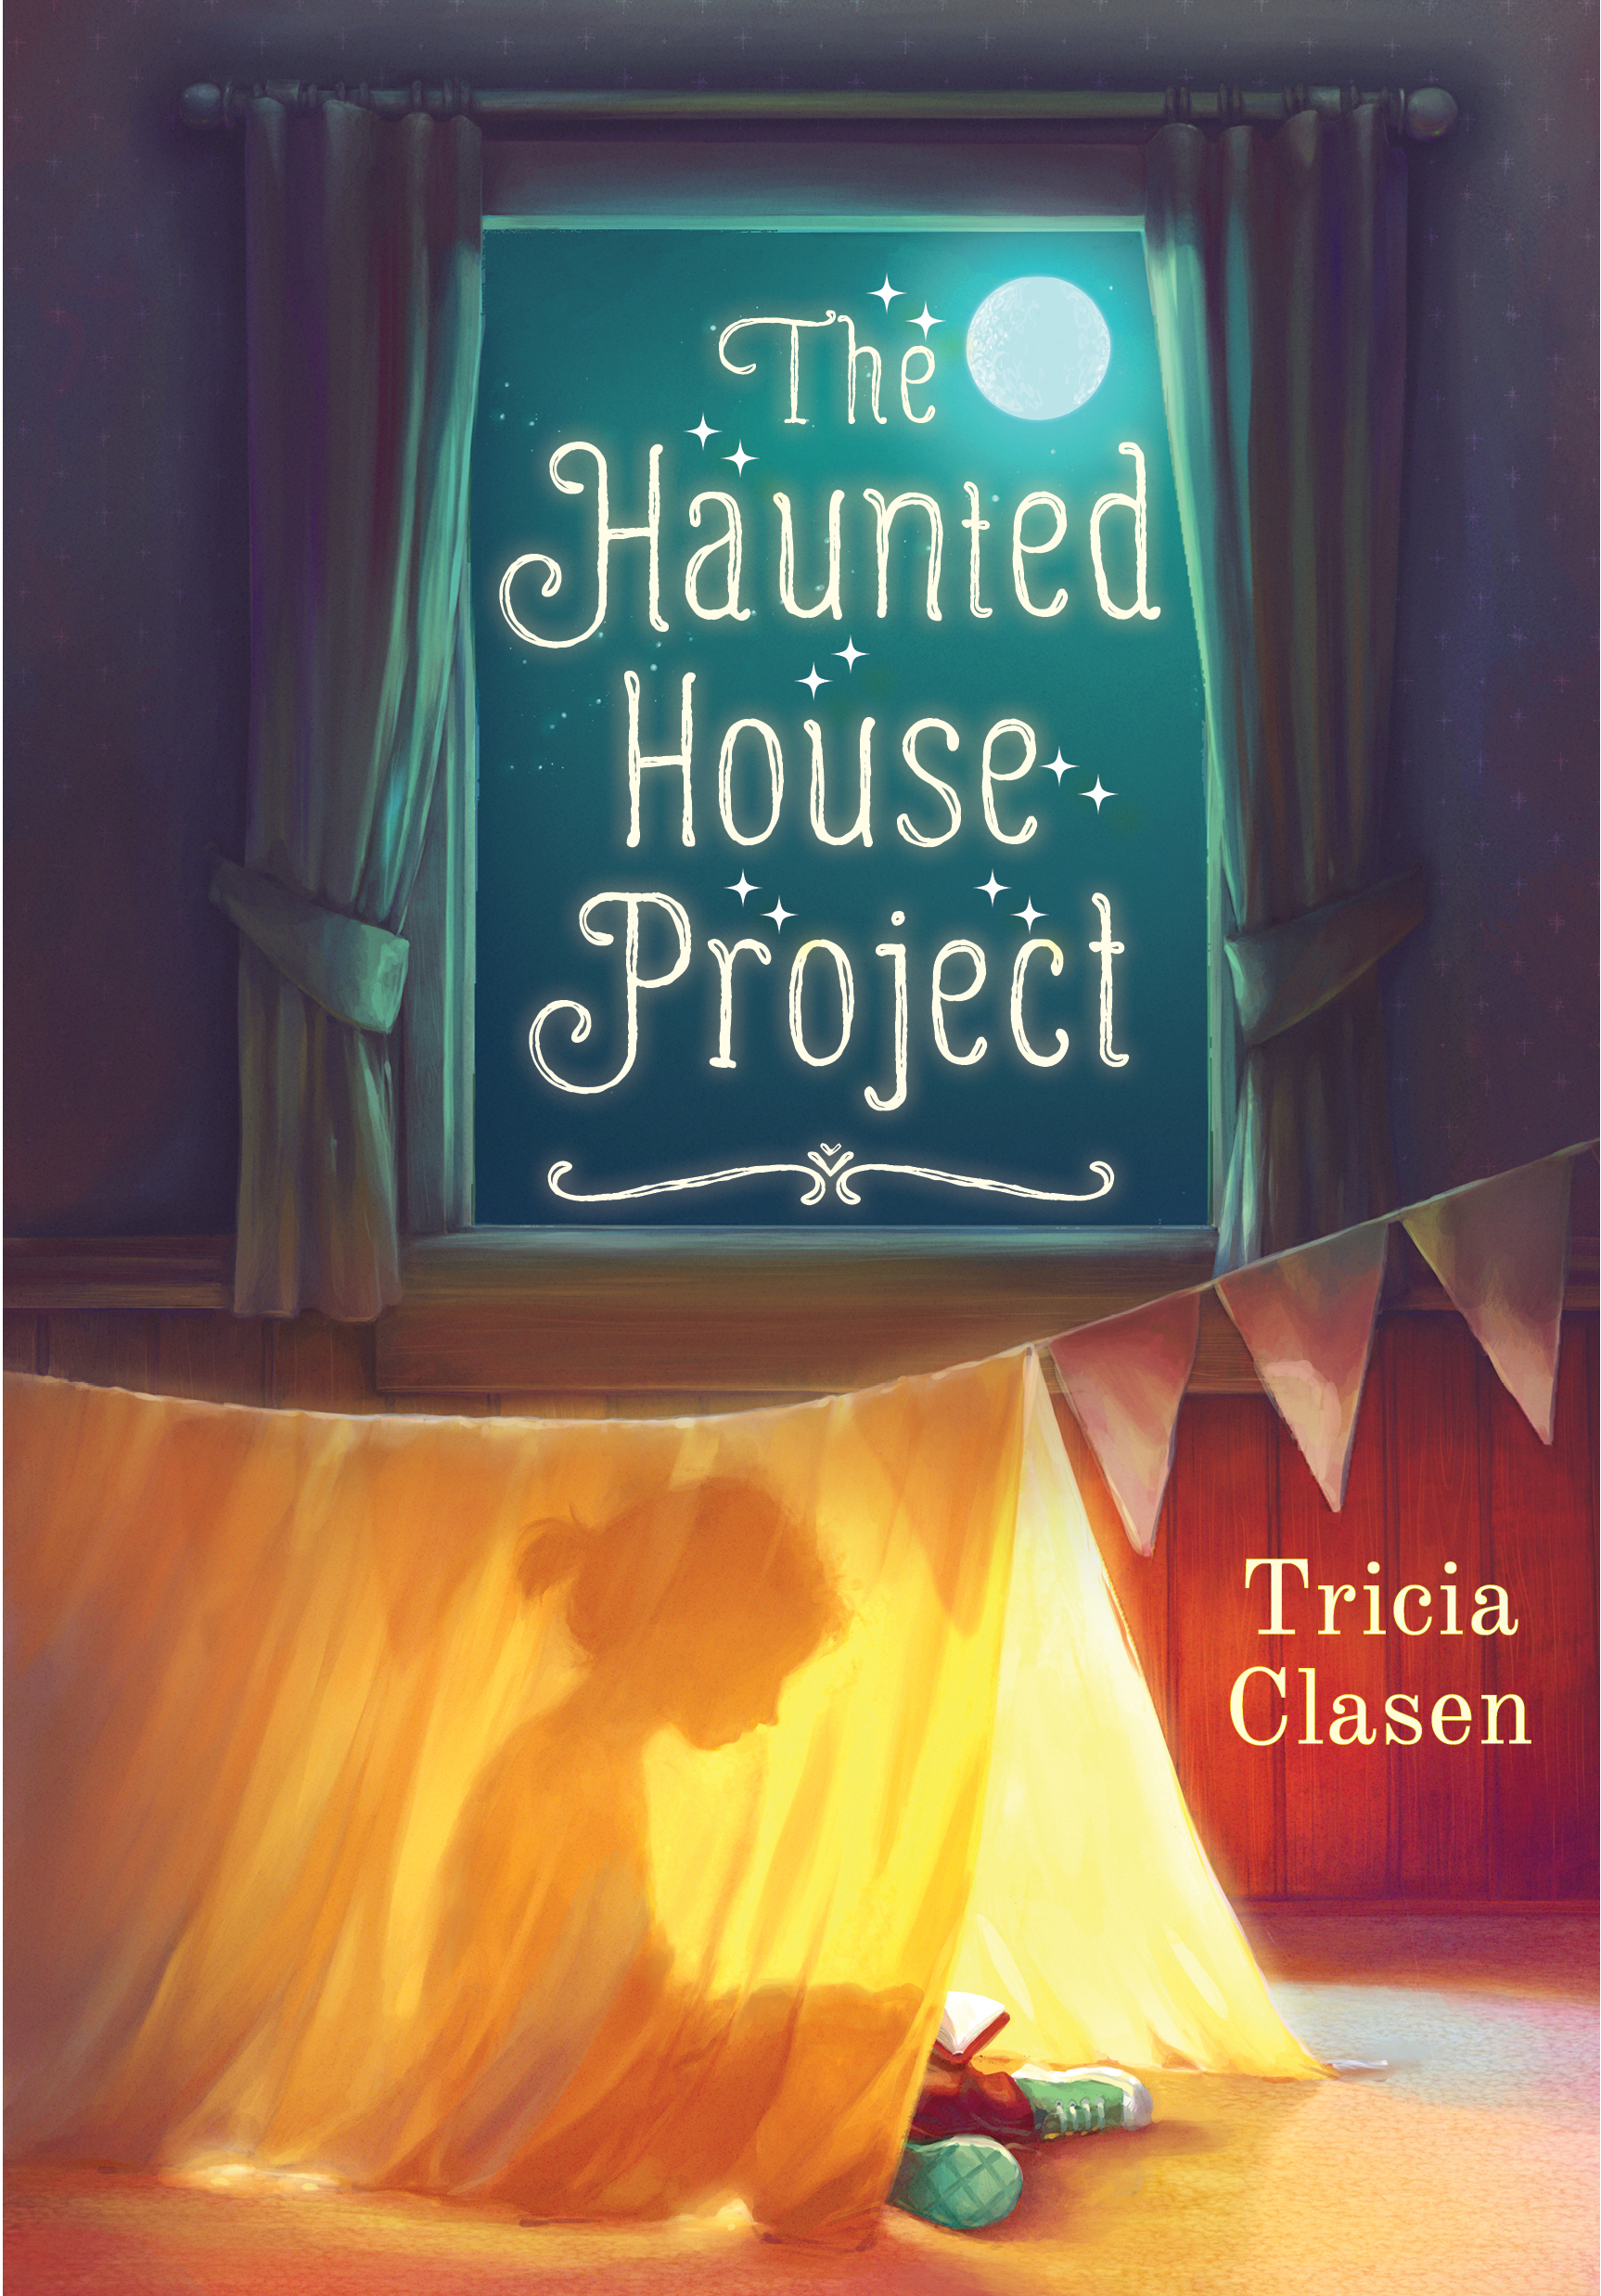 THE HAUNTED HOUSE PROJECT by Tricia Clasen Sky Pony Press, September 2016